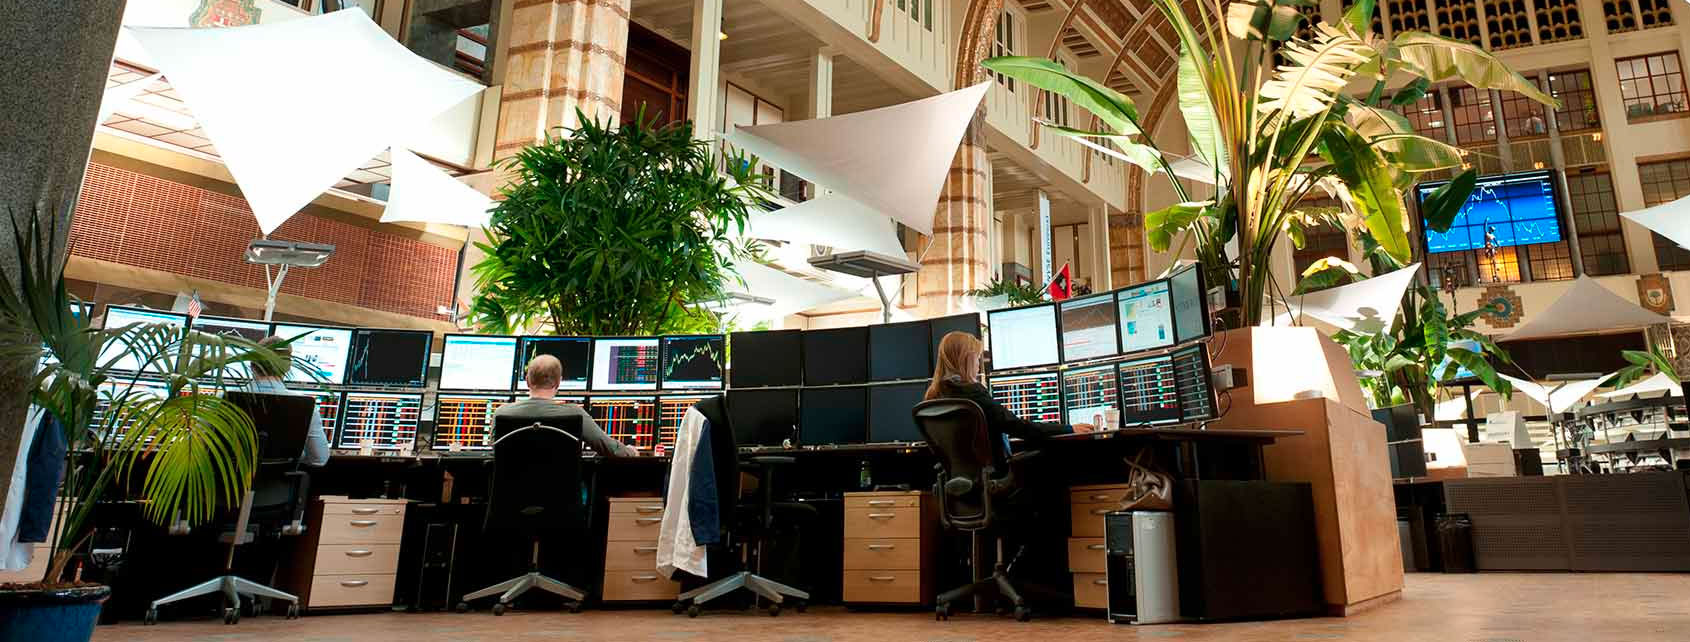 professional-trading-in-amsterdam